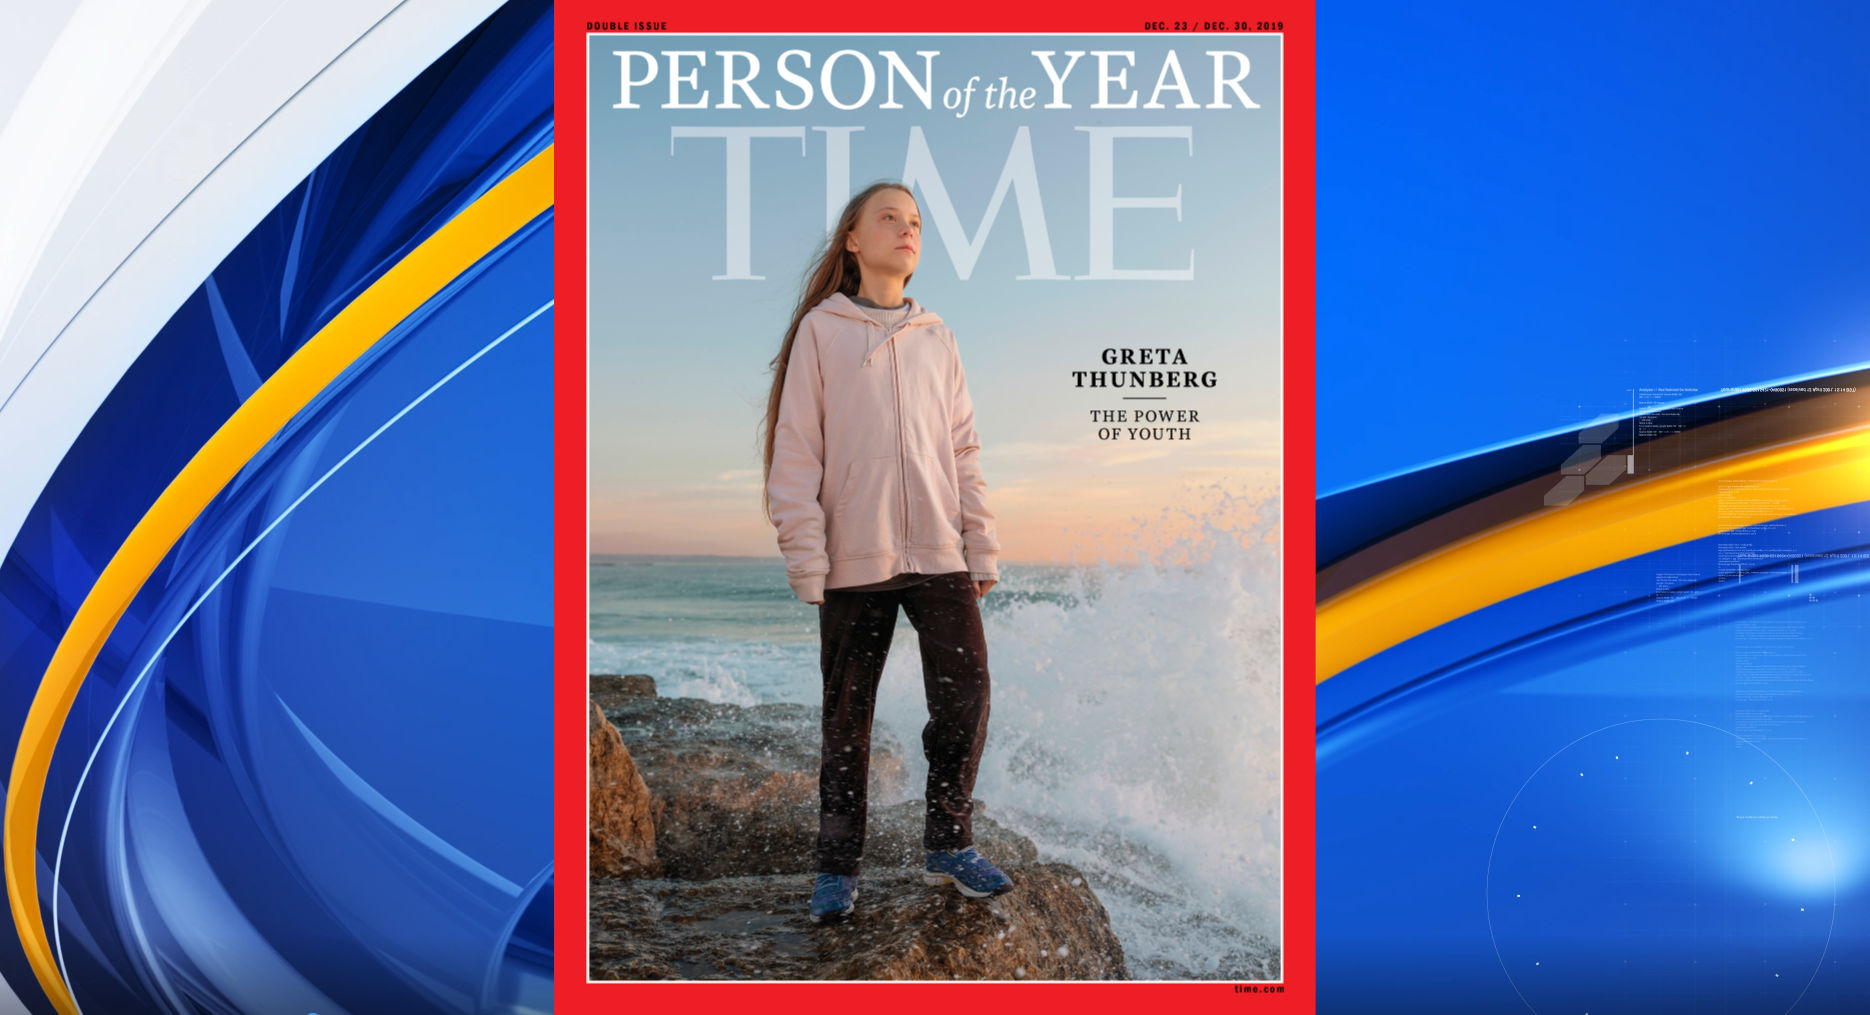 Greta Time person of the year